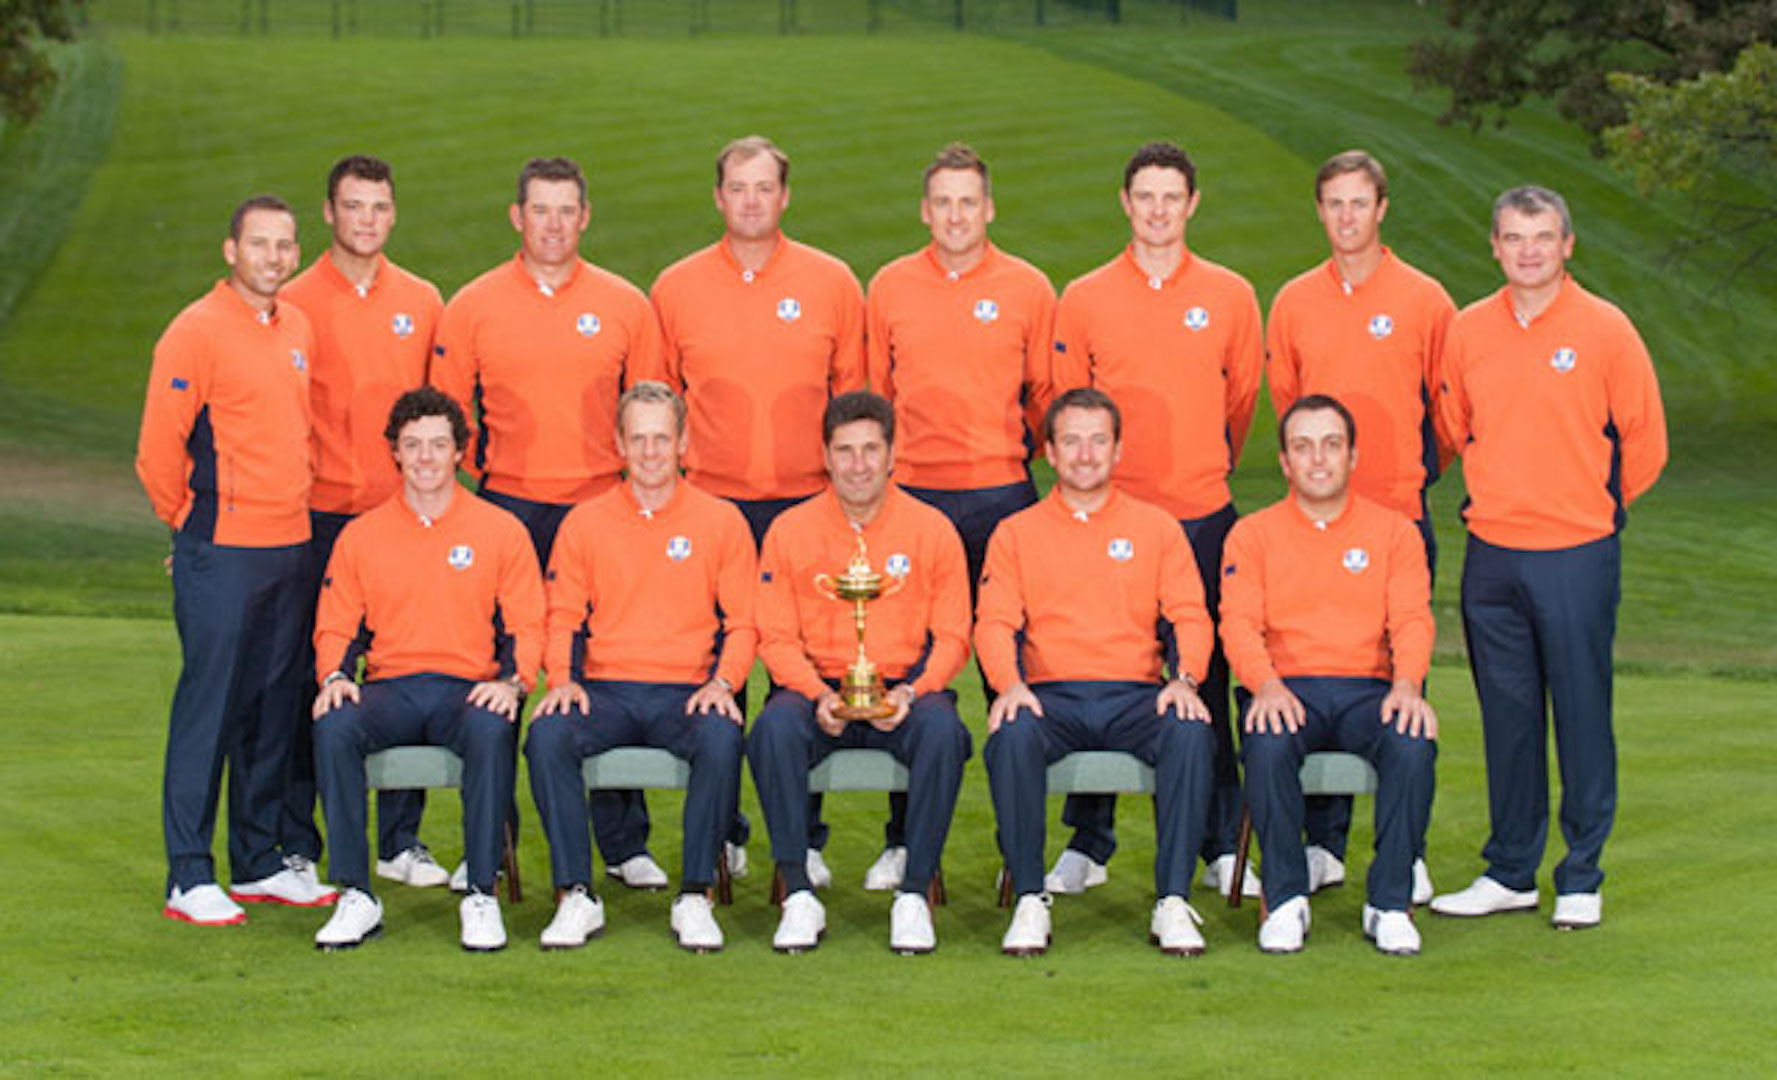 Ryder Cup fashion disasters